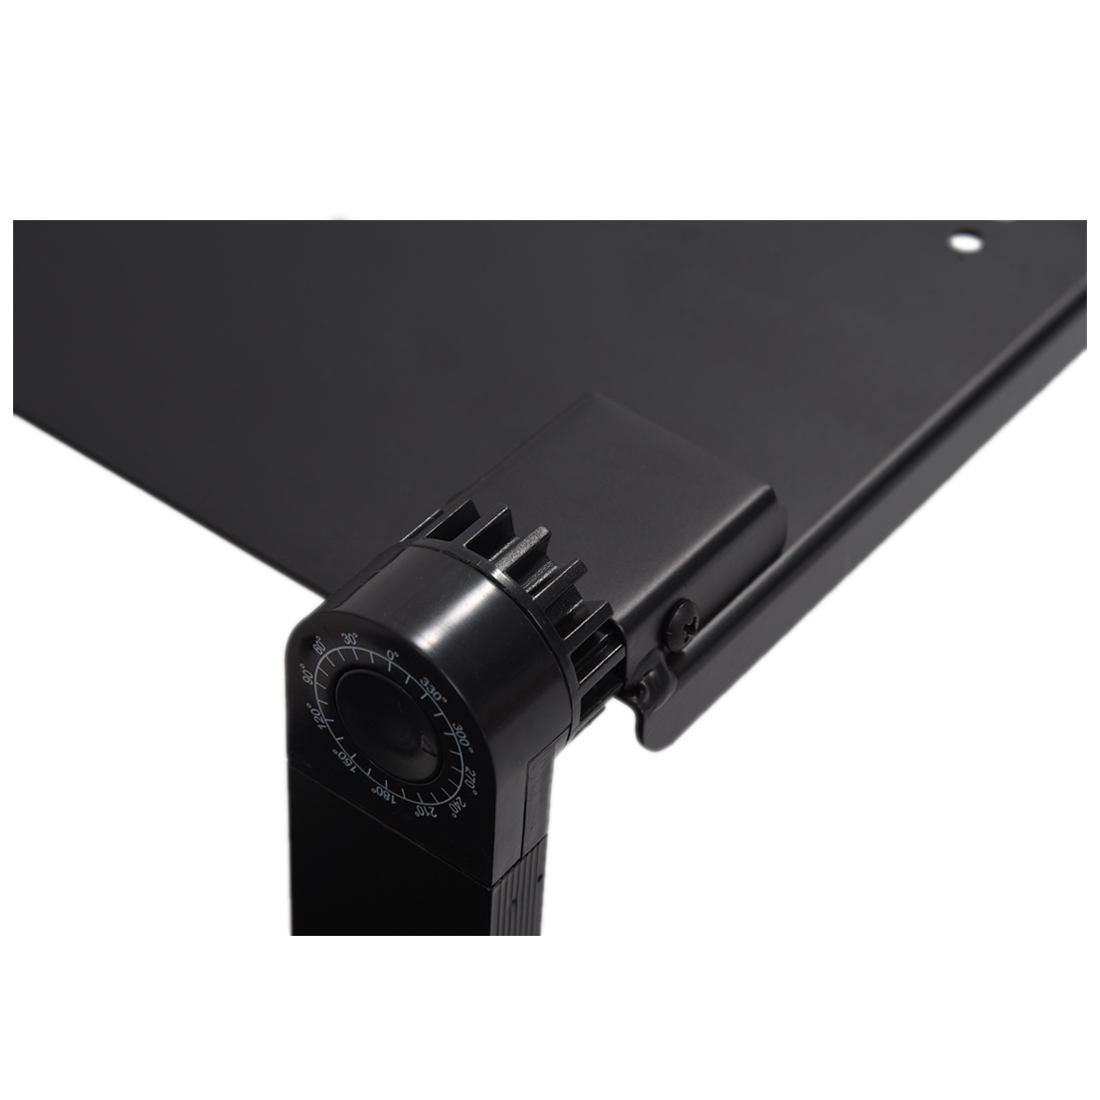 High Quality Portable Foldable Adjustable Laptop Desk Computer Table Stand Tray For Sofa Bed Black 3